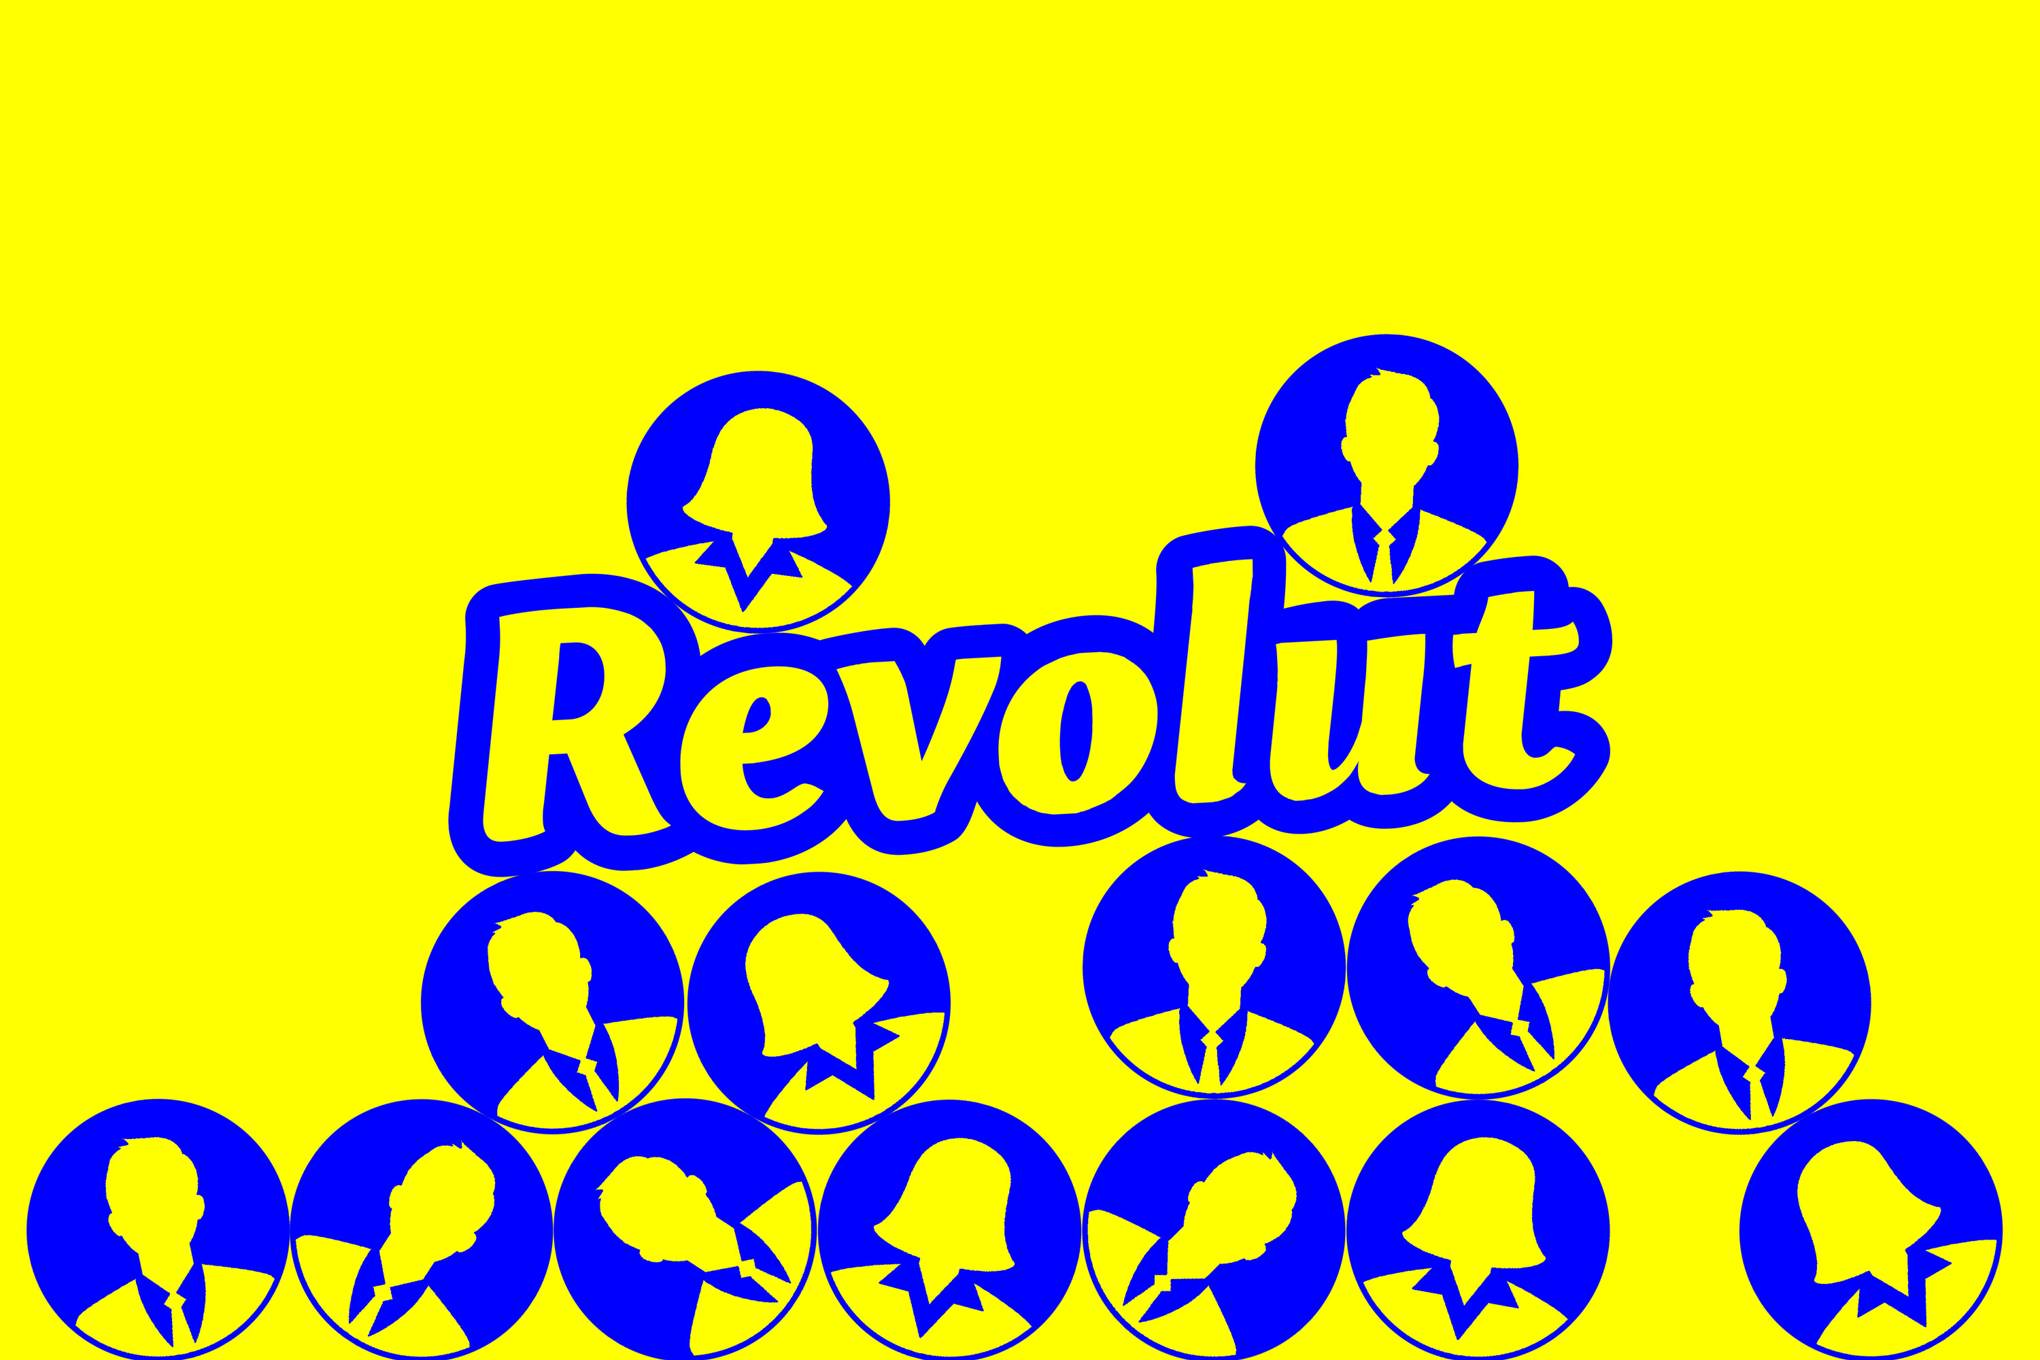 Revolut Insiders Reveal The Human Cost